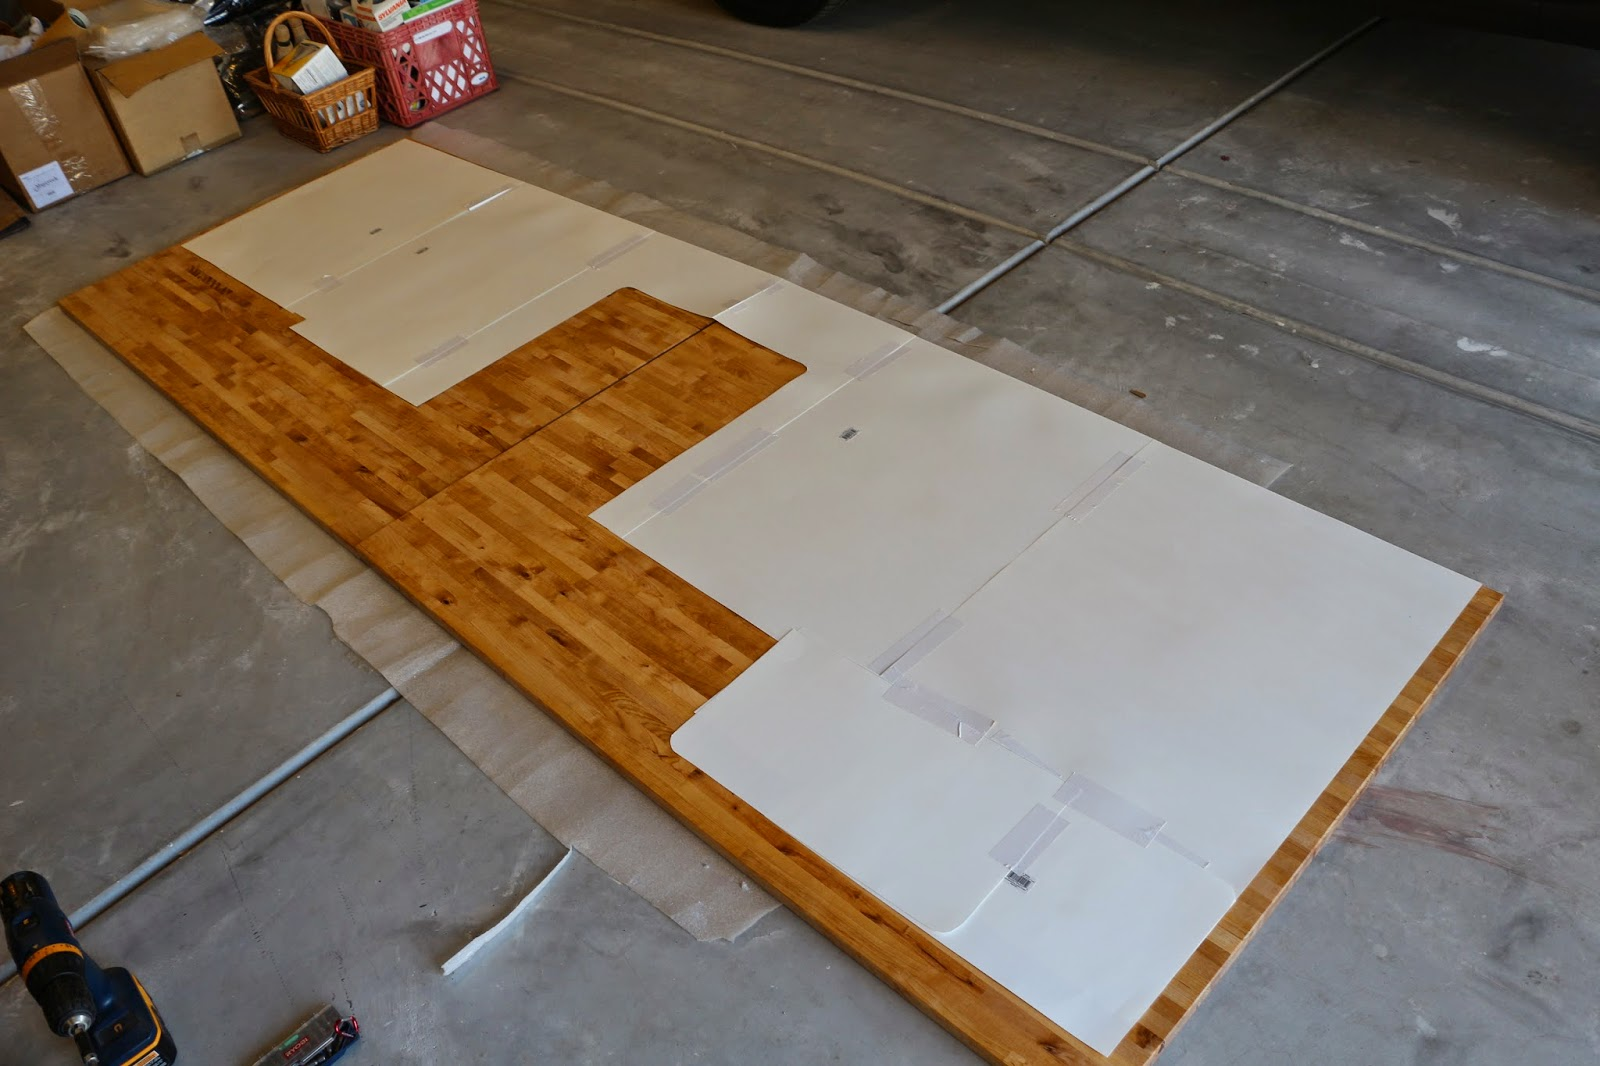 diy wood counters, wood countertop template, how to make wood countertops